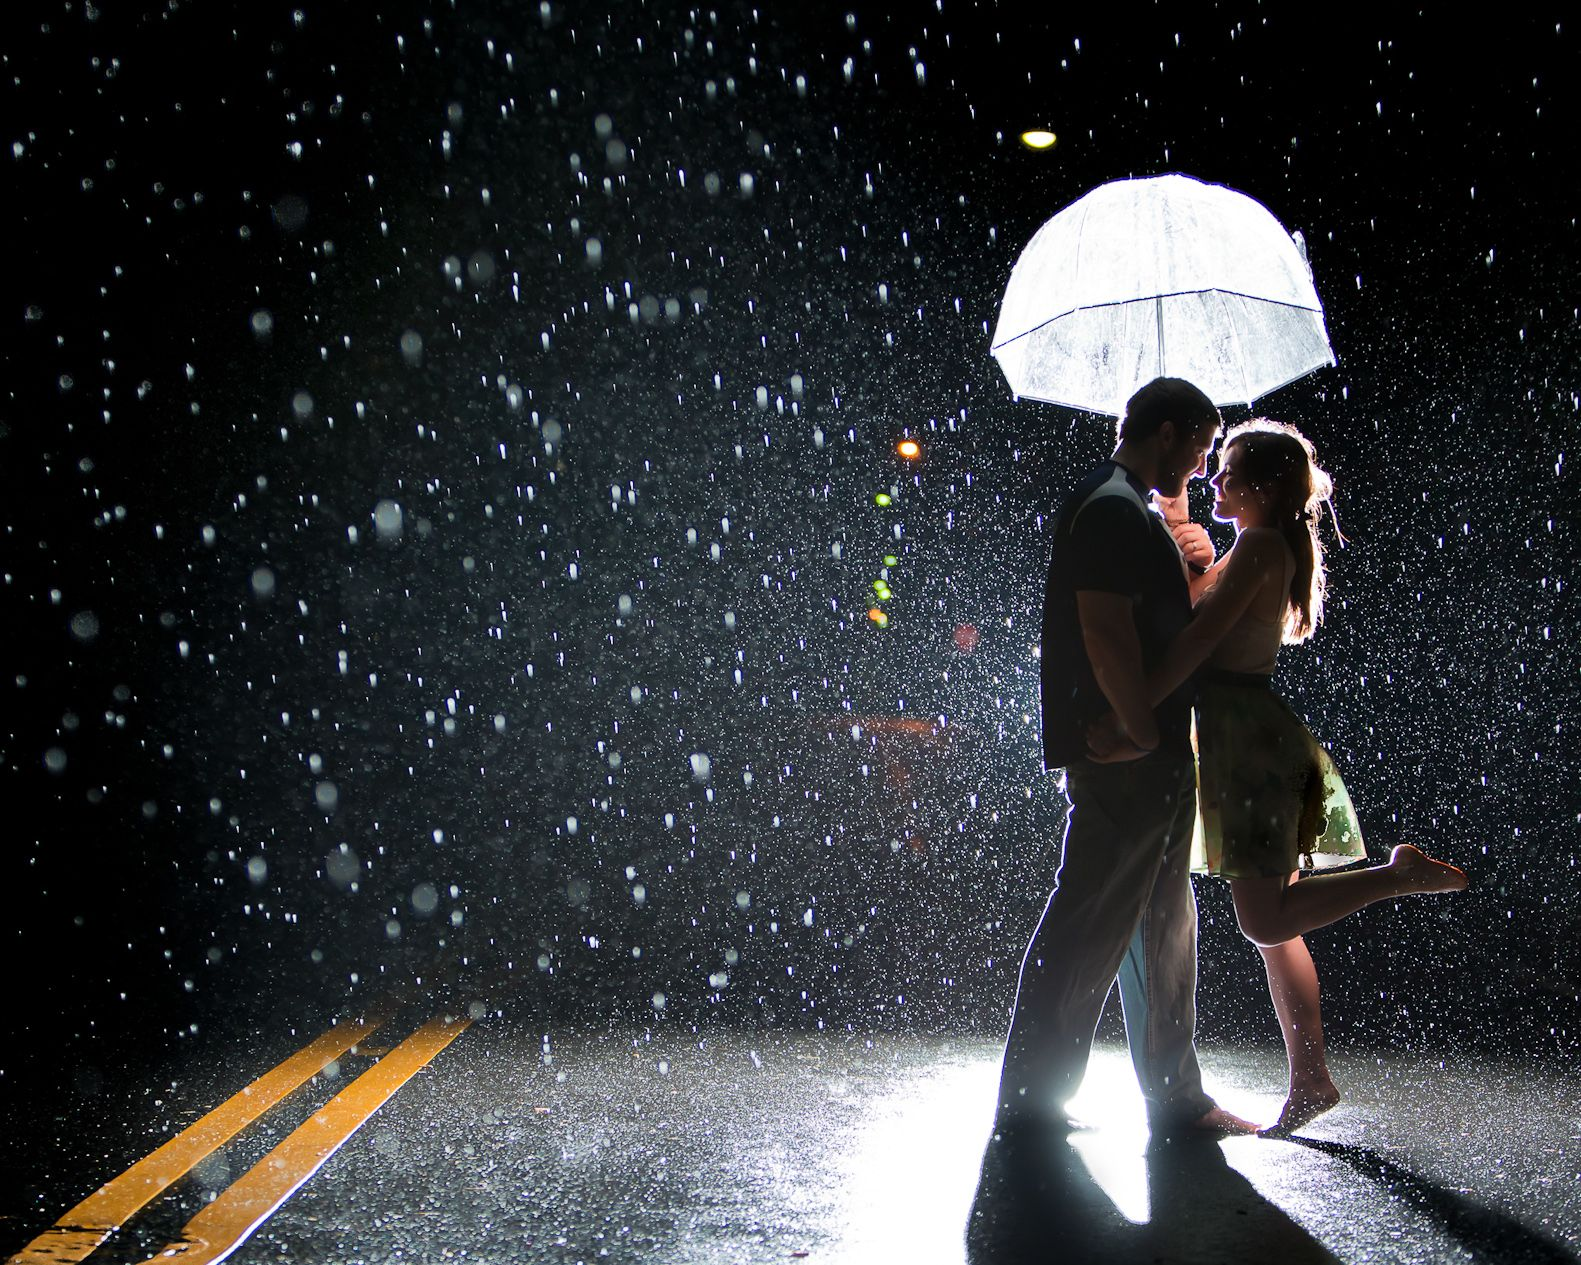 One Direction Preferences #4 Dancing In The Rain